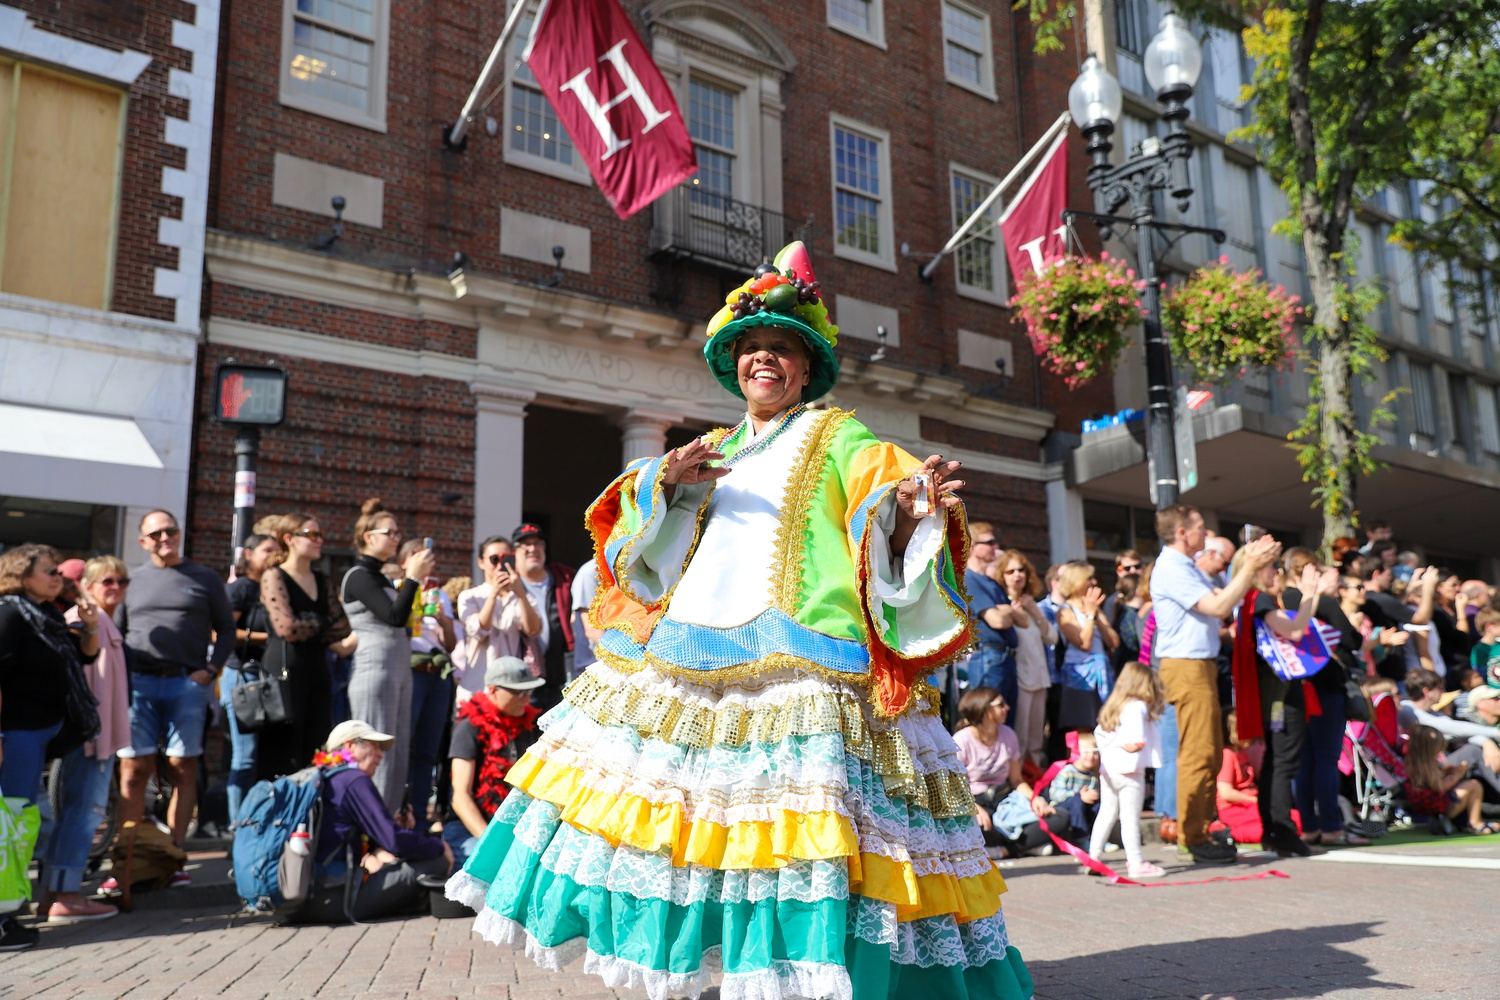 On the festival's third day, local community groups, artists, and activists promoting a variety of social causes join the brass bands in a vibrant parade from Davis Square to Harvard Square, converging with the Harvard Square Oktoberfest.